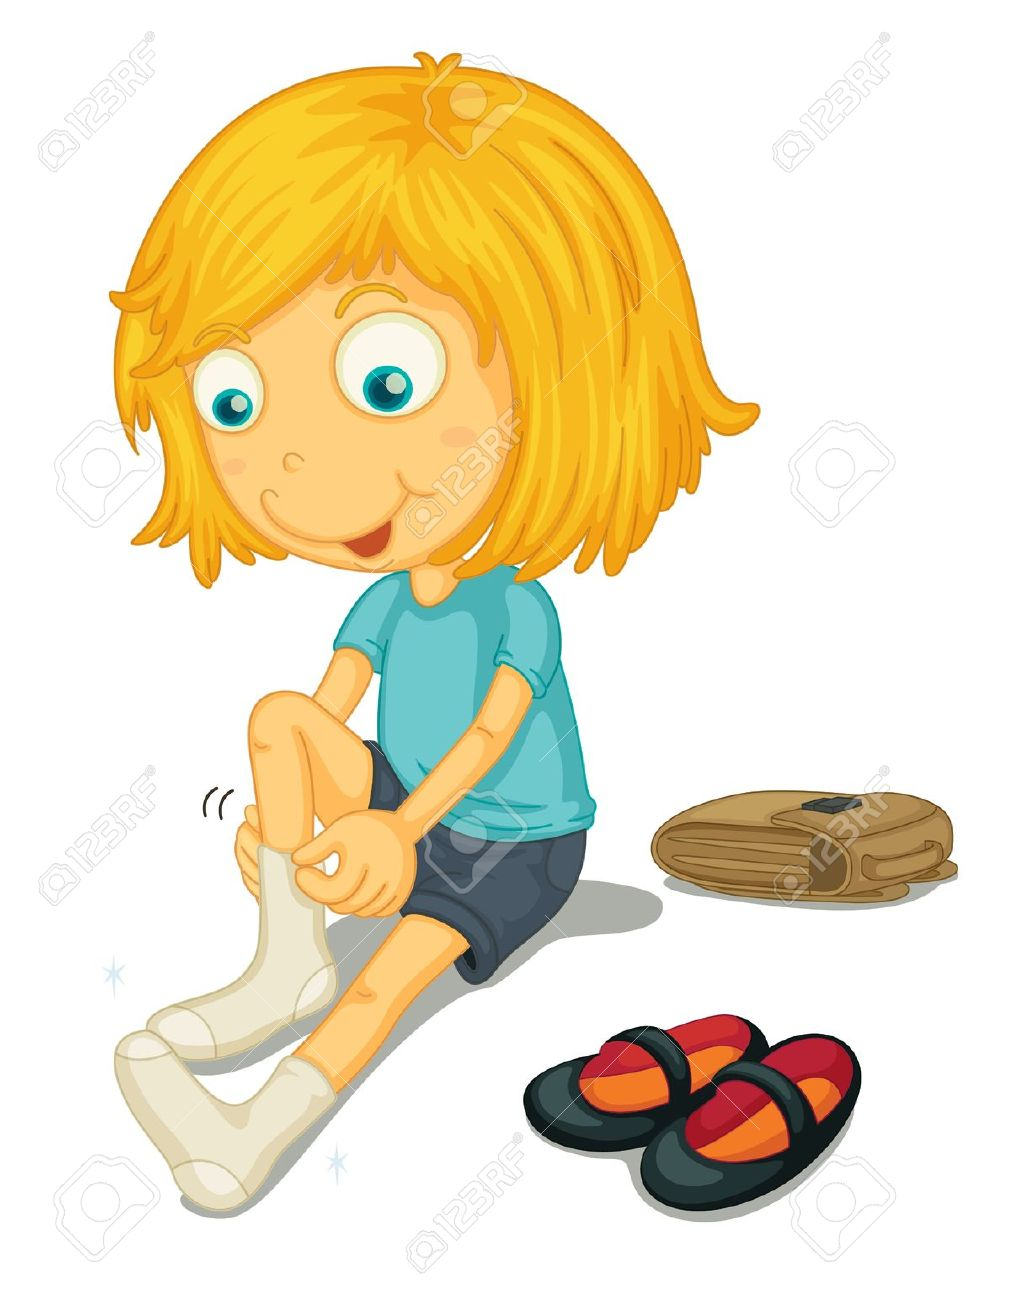 Put on socks and shoes art clipart.